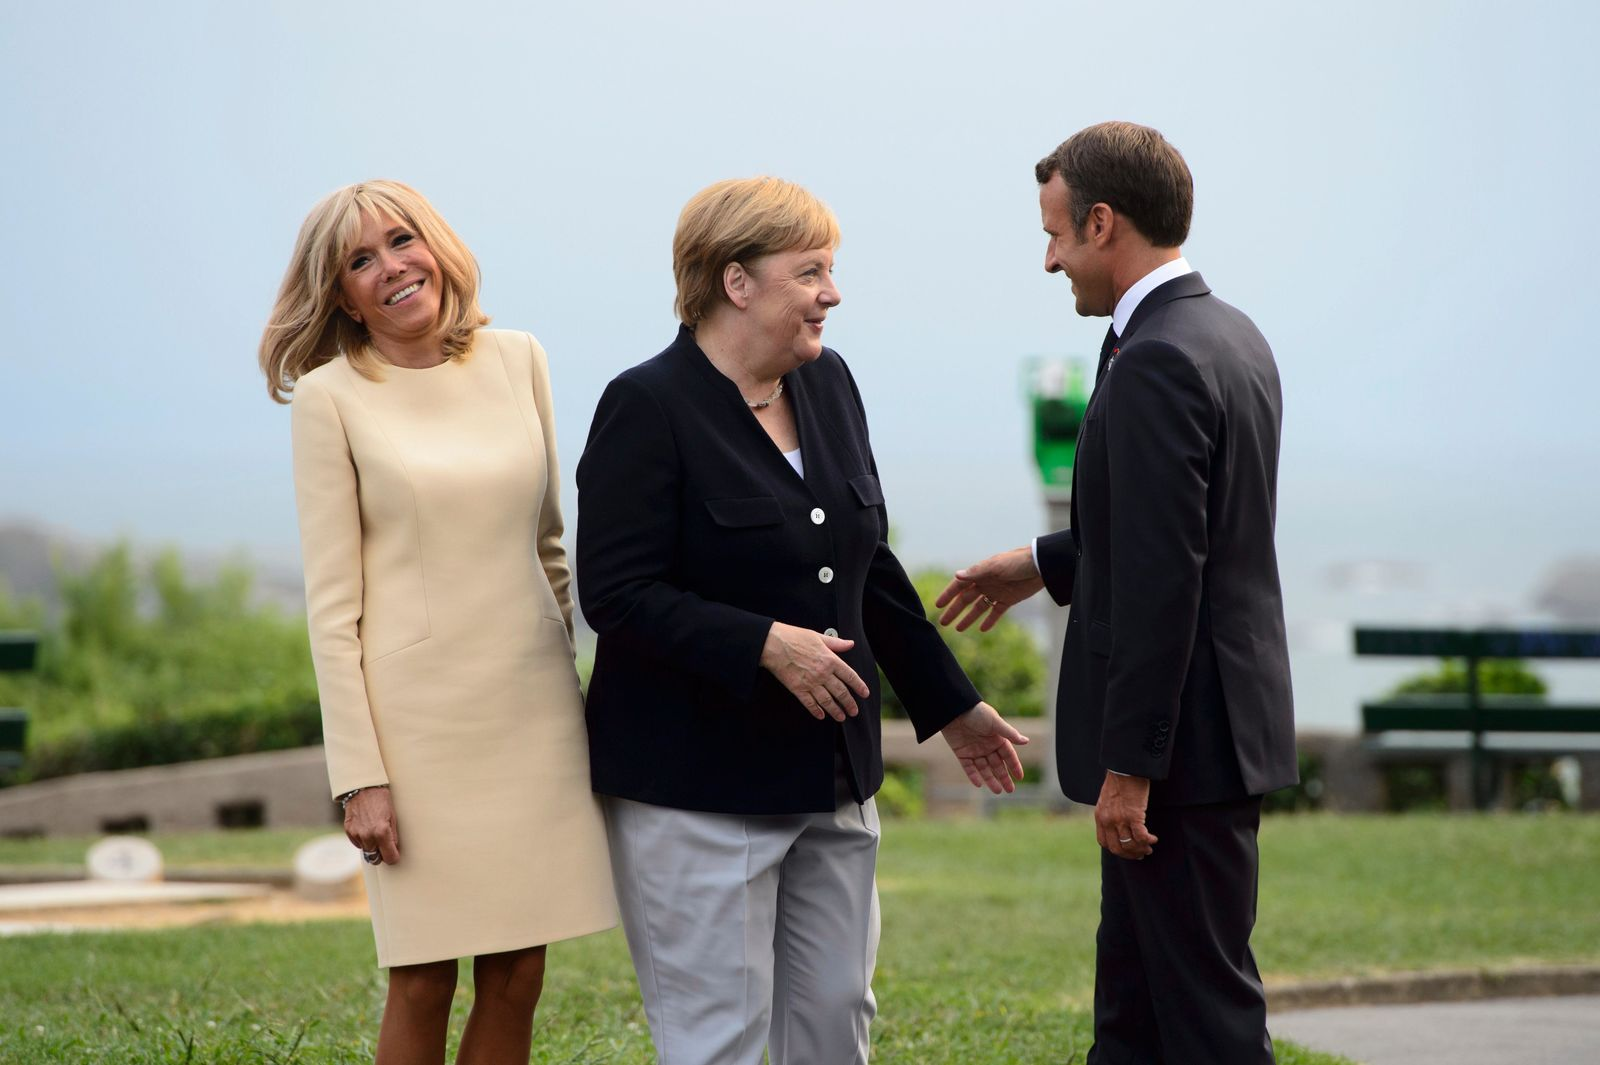 German Chancellor Angela Merkel, center, is greeted by President of France Emmanuel Macron, right, and wife Brigitte Macron as he arrives to the G7 Summit in Biarritz, France, Saturday, Aug. 24, 2019. (Sean Kilpatrick/The Canadian Press via AP)